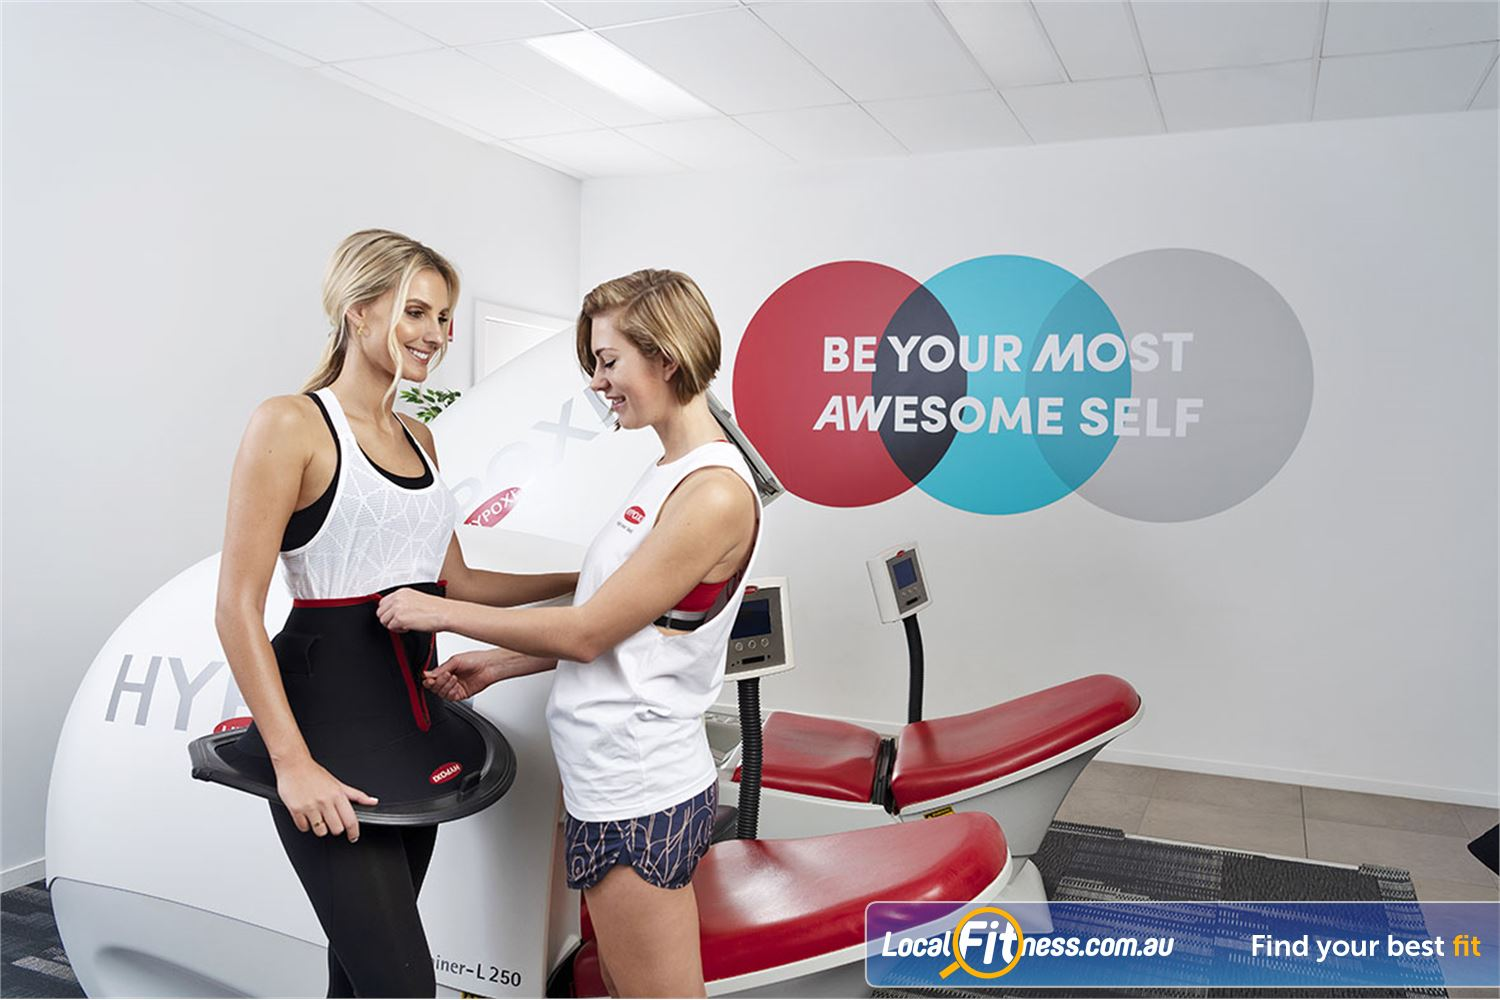 HYPOXI Weight Loss Myaree Welcome to the HYPOXI Myaree weight-loss studio.